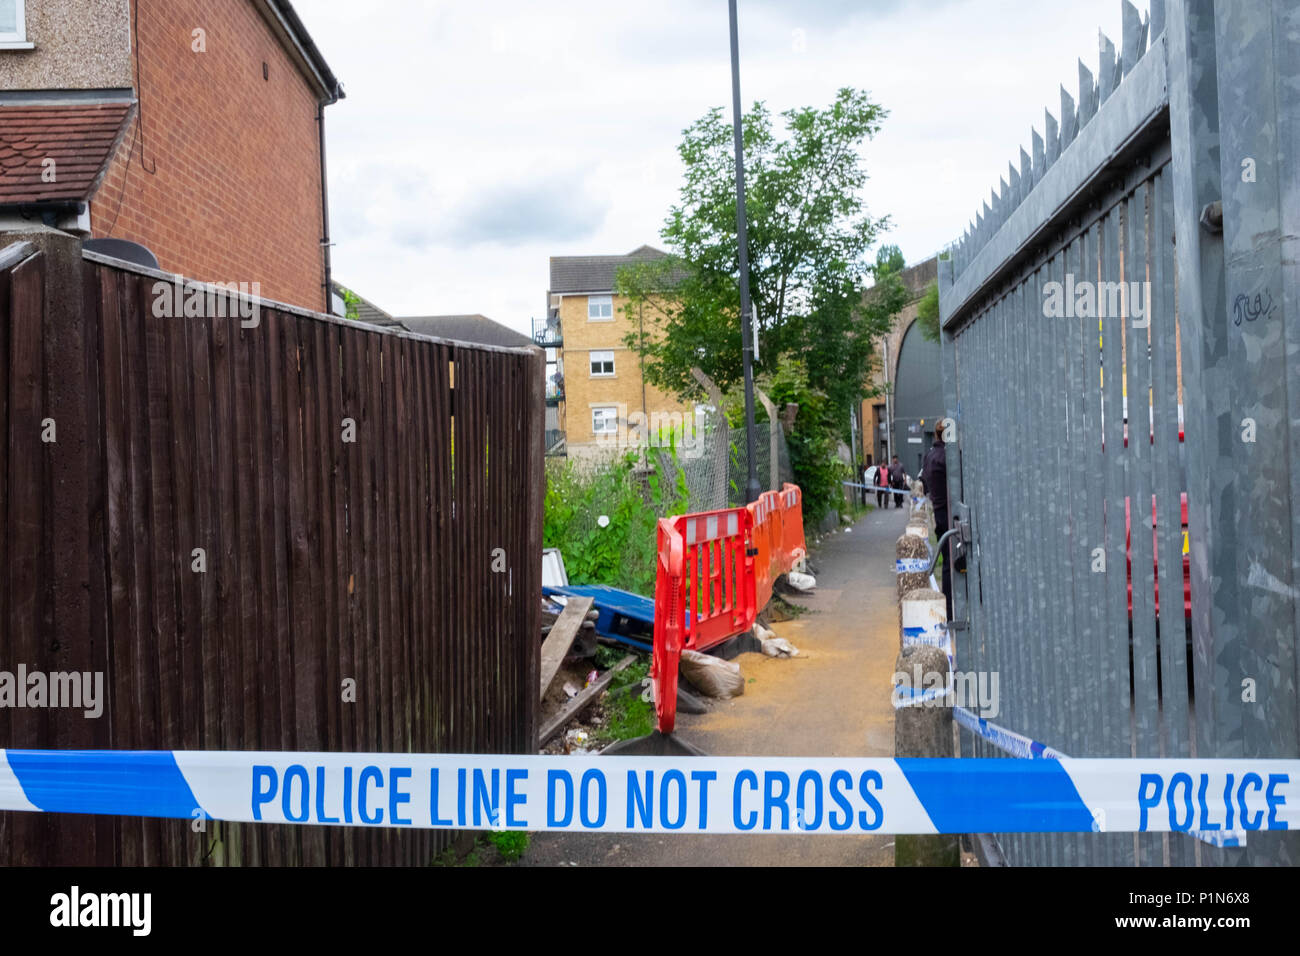 South Harrow, London, England. 12th June 2018. Police search for clues and protect the scene of the latest violent incident in Harrow, contributing to the continuous violent crime rates in London. The location is very close to recent stabbing of a 17 year old and is part of the same investigation.  The Police would only say that someone had been very badly injured. They were undertaking a finger tip search of the crime scene on Roxeth Green Avenue, South Harrow. Credit © Tim Ring/Alamy Live News - Stock Image